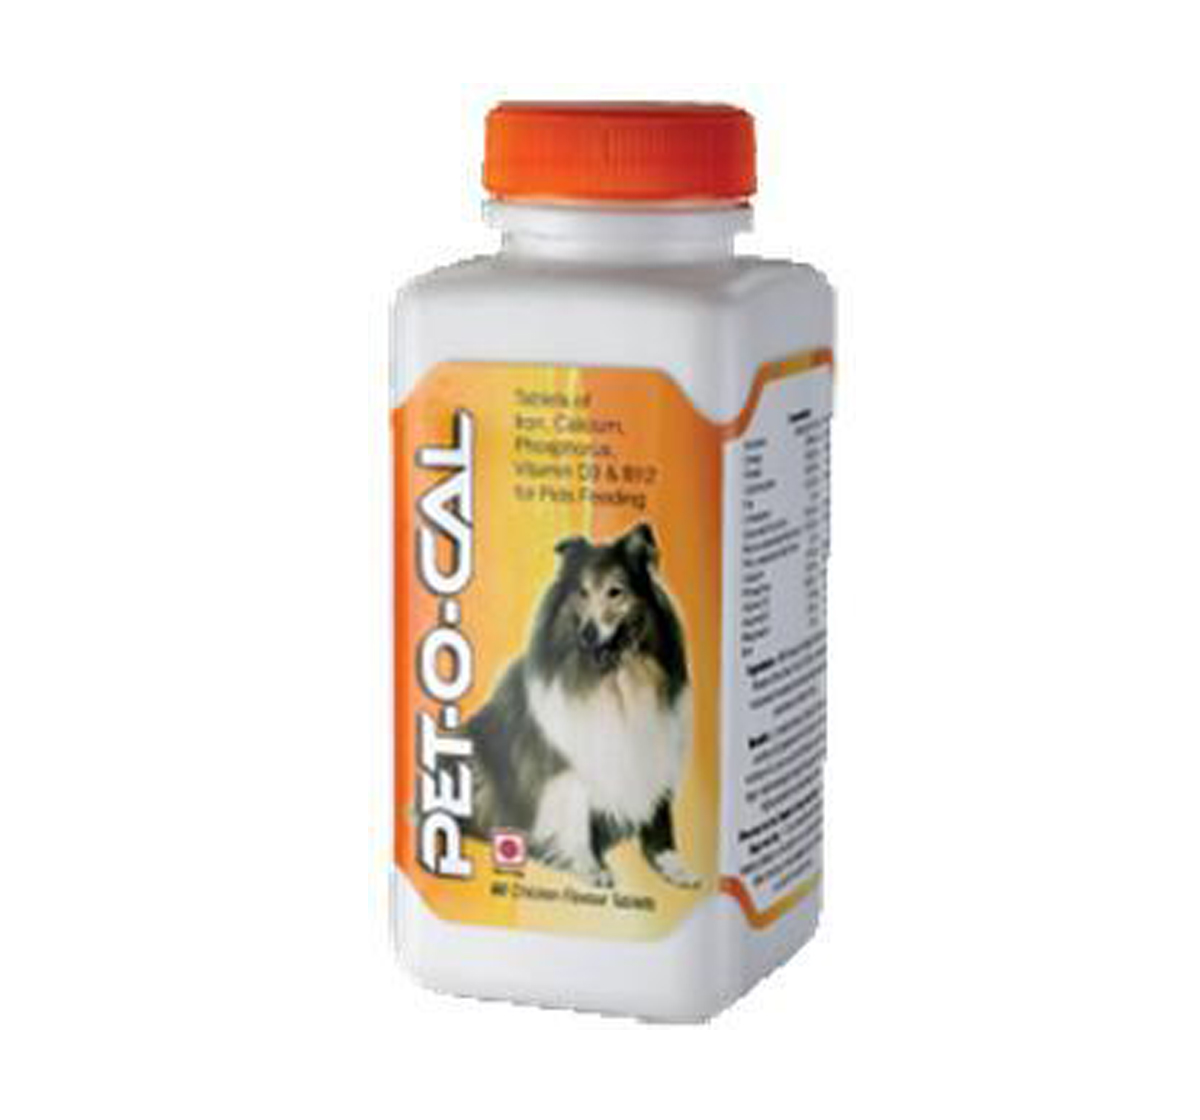 Cat health products uk